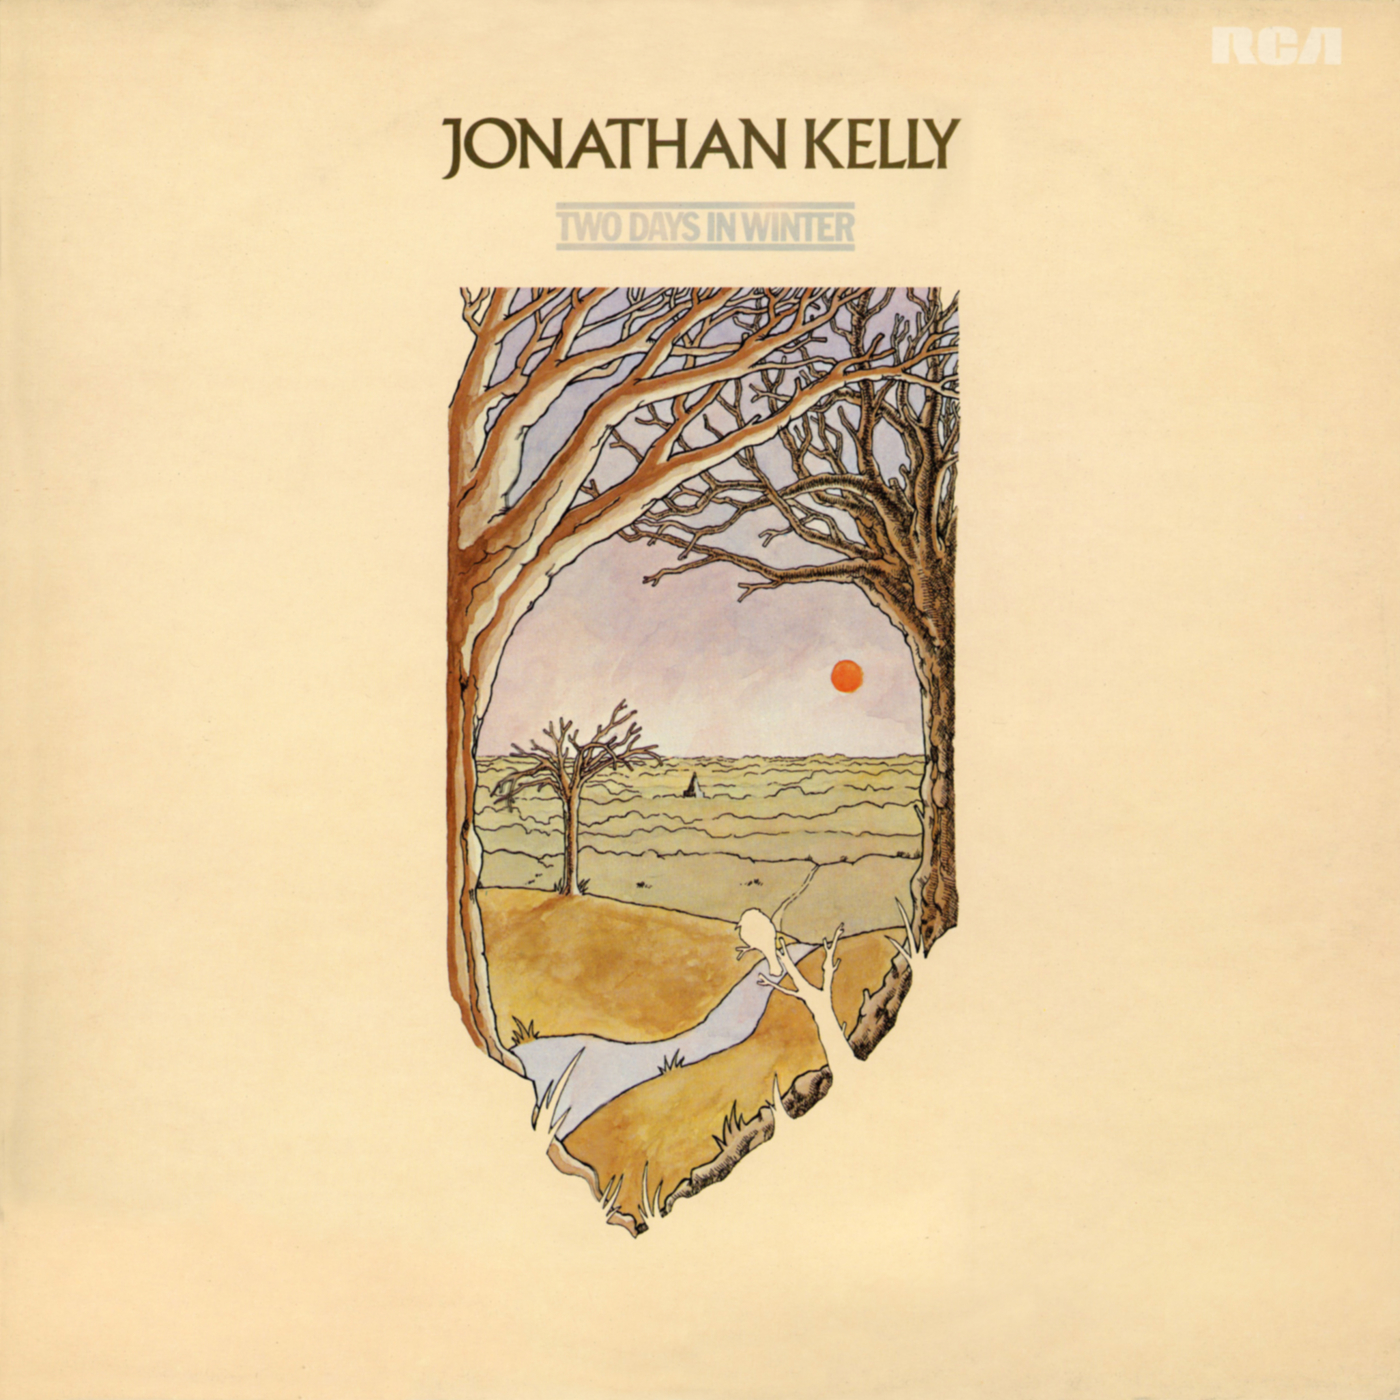 Two Days in Winter - Jonathan Kelly